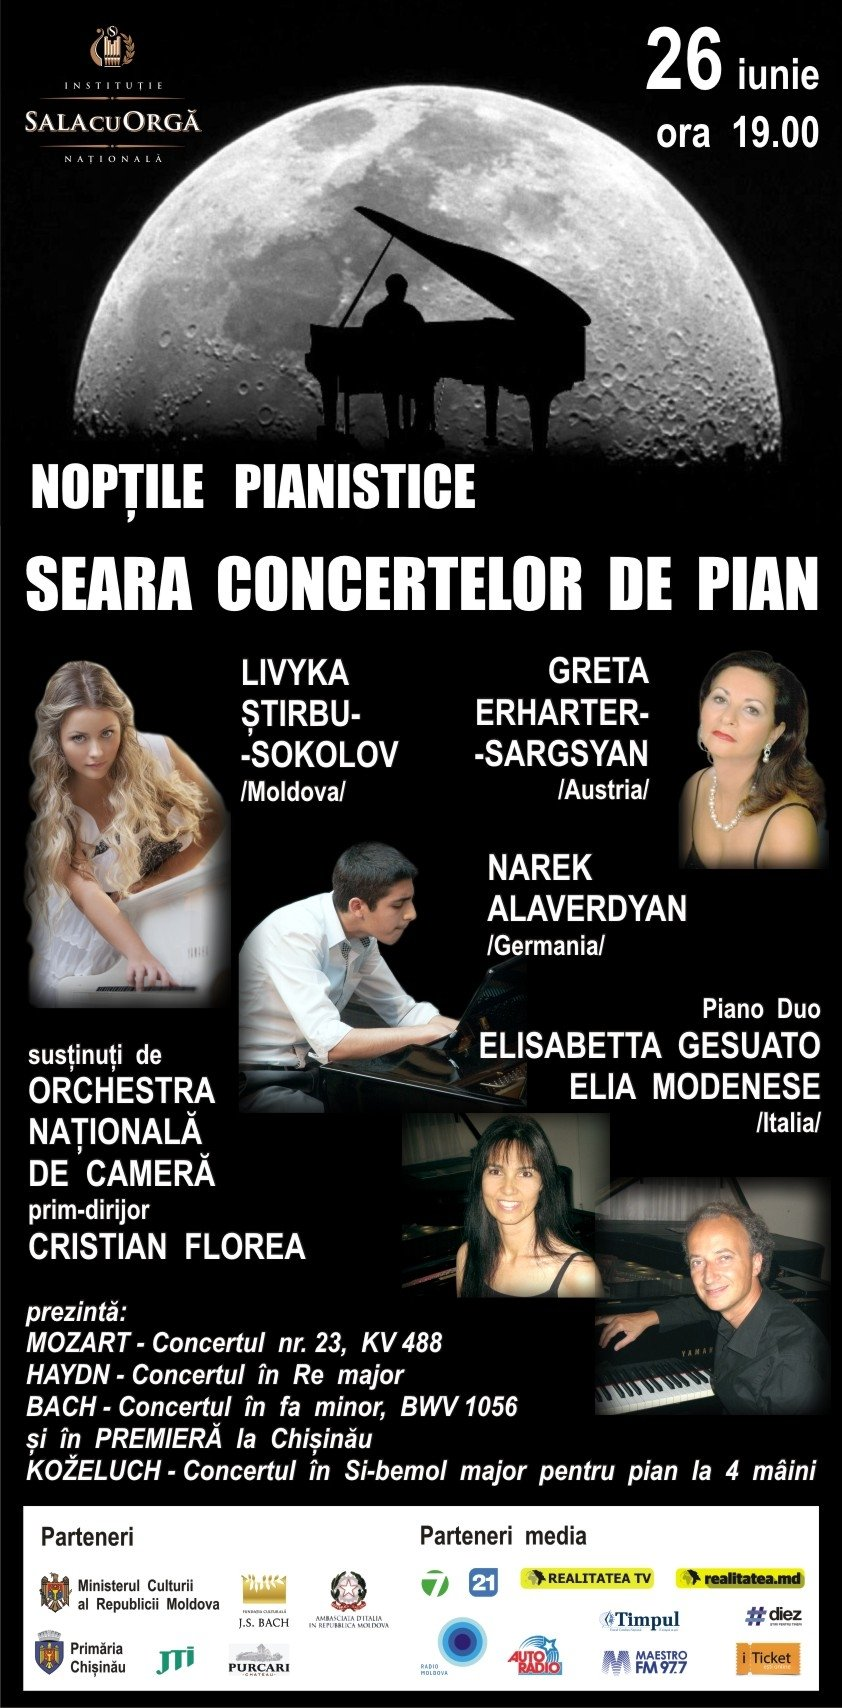 Noptile pianistice cu Orchestra Nationala de Camera